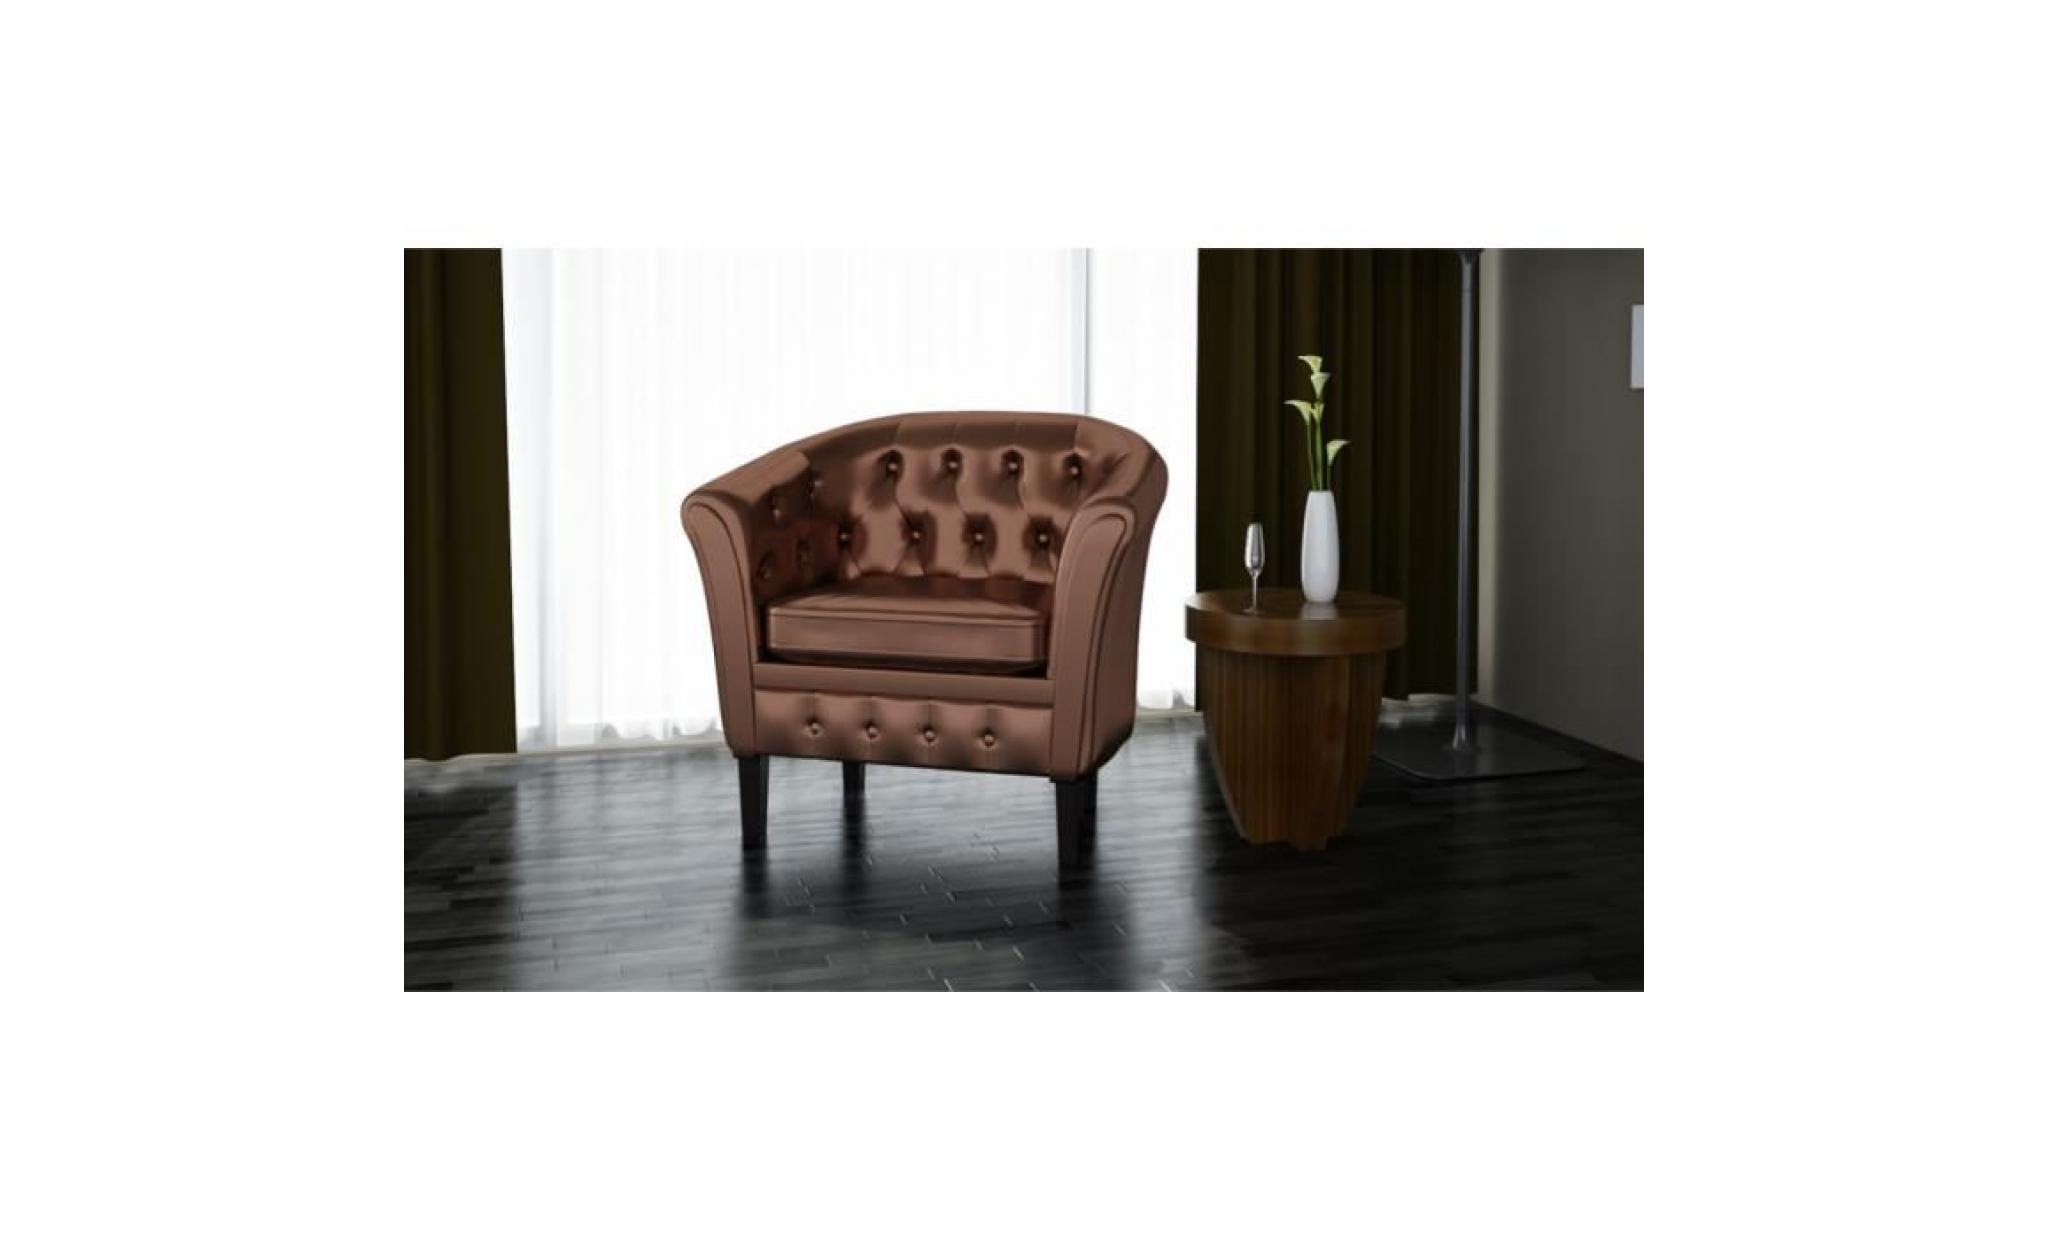 fauteuil chesterfield bronze achat vente fauteuil pas cher couleur et. Black Bedroom Furniture Sets. Home Design Ideas